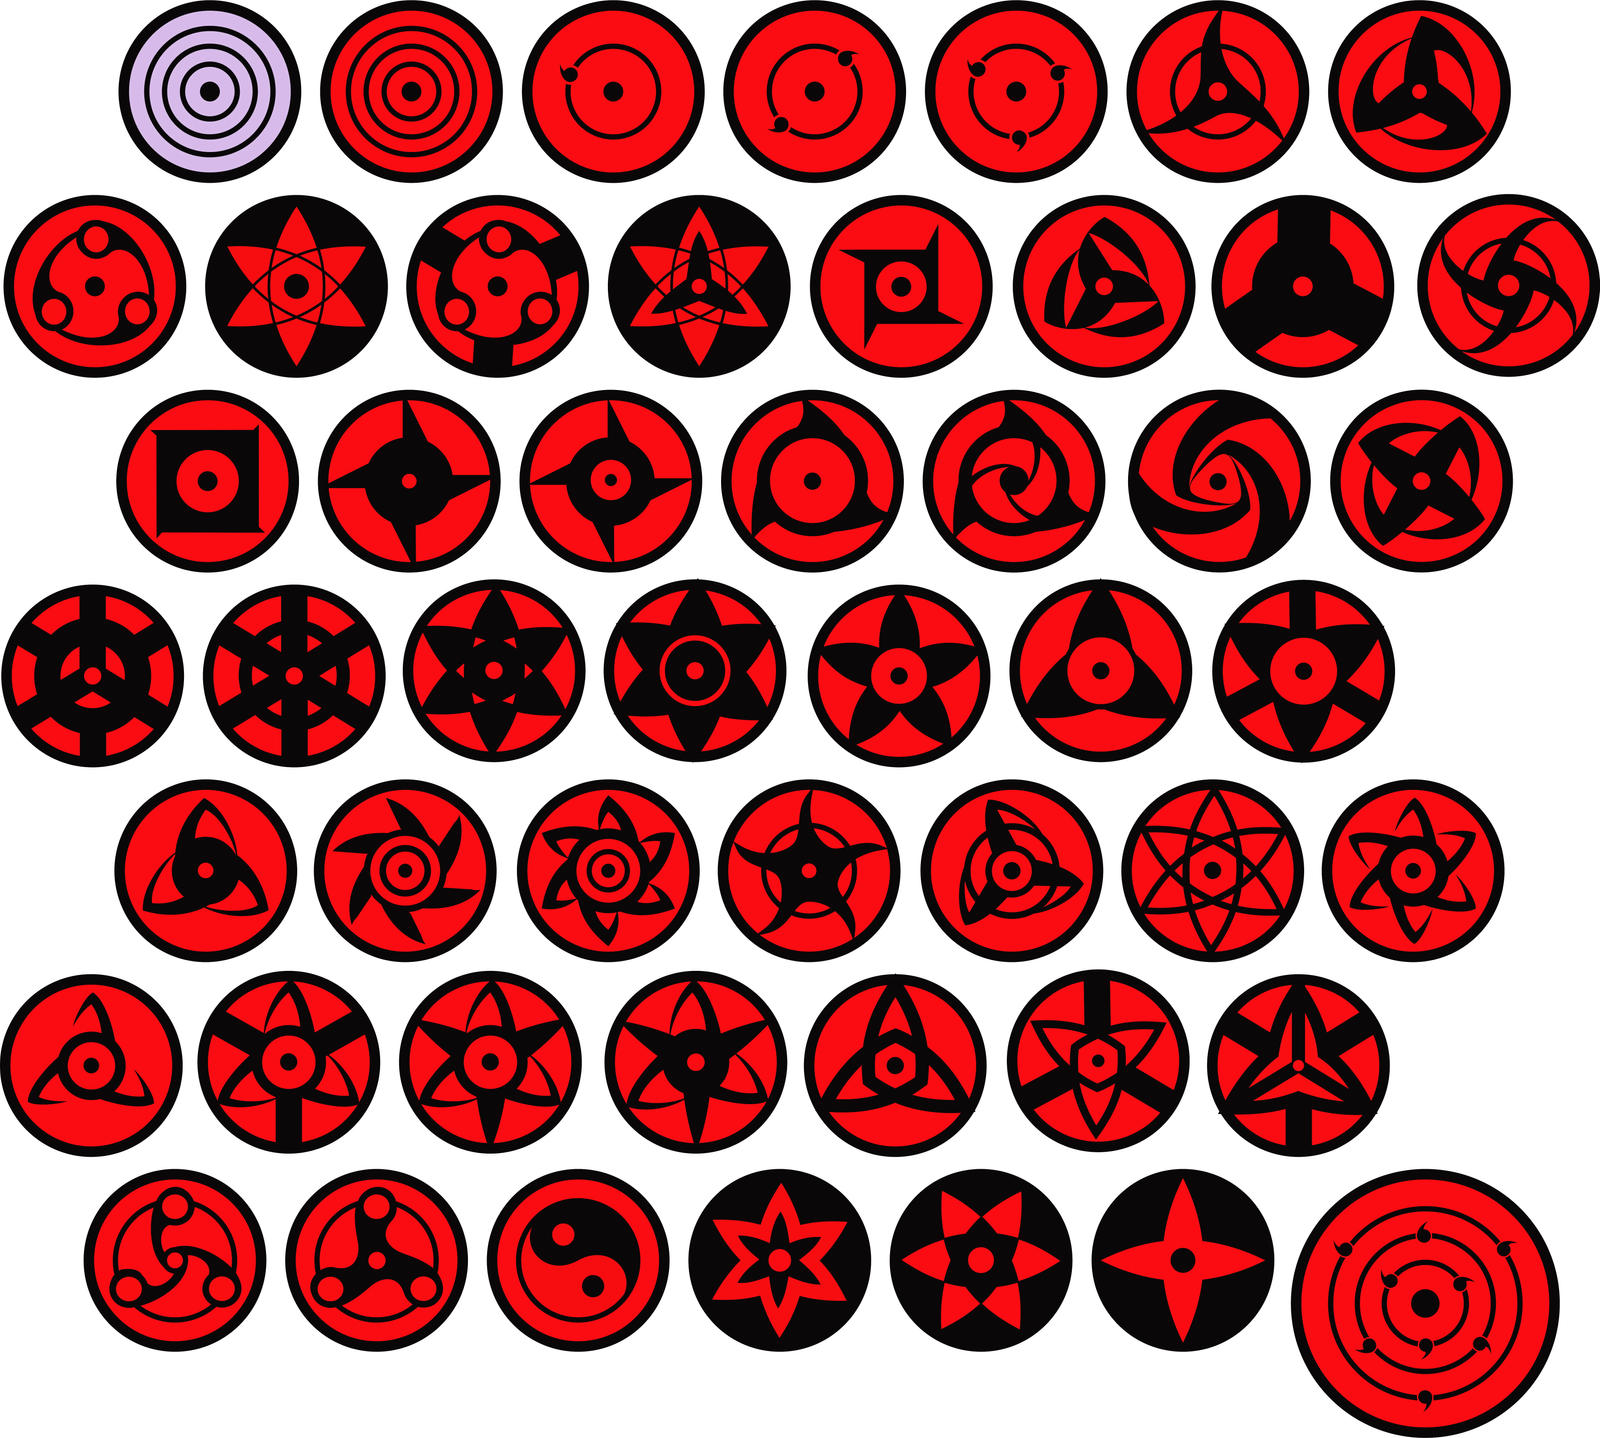 sharingan uzumaki naruto - photo #34